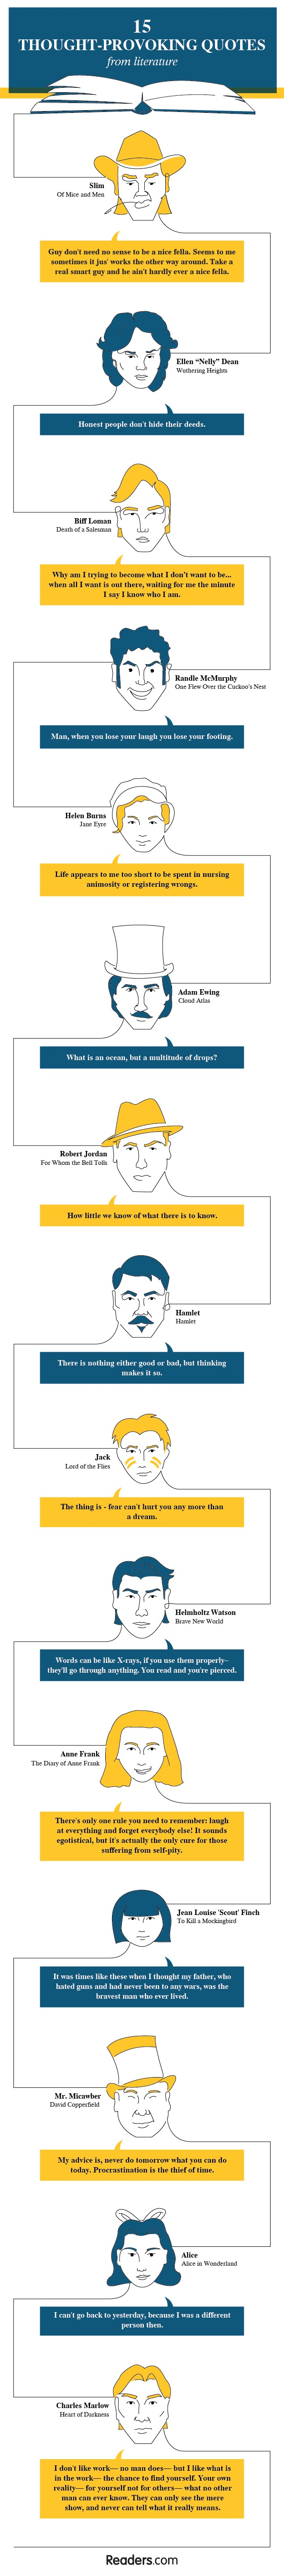 15 thougt-provoking quotes from literature #infographic